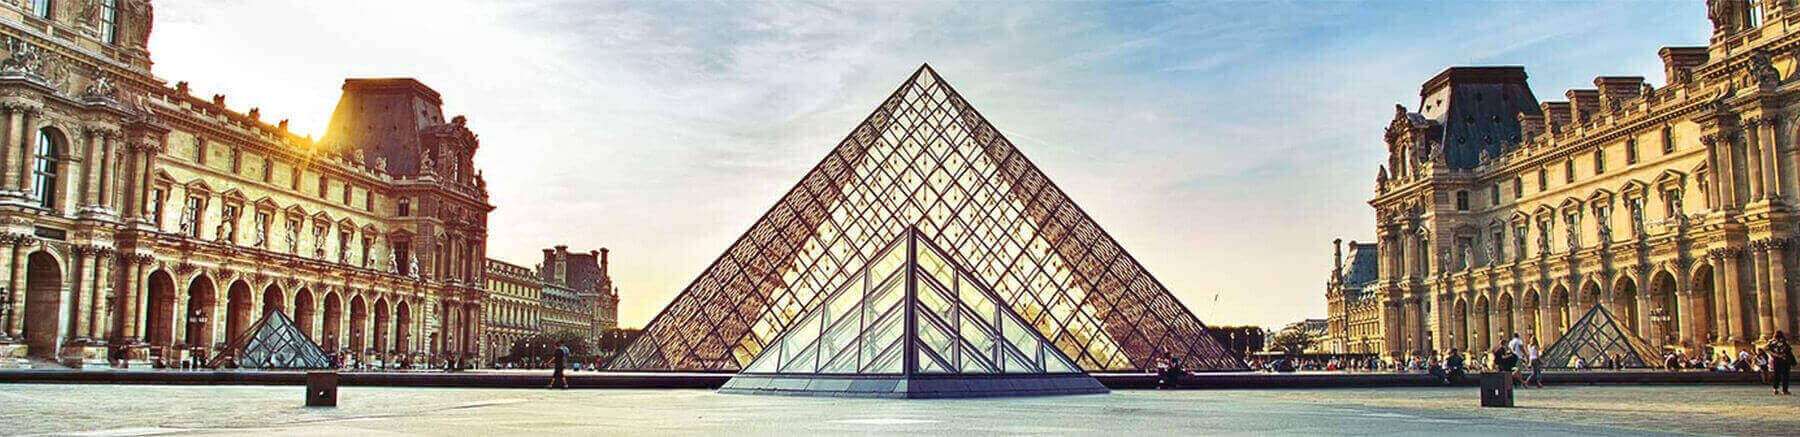 The pyramid of the Louvre museum in Paris, France